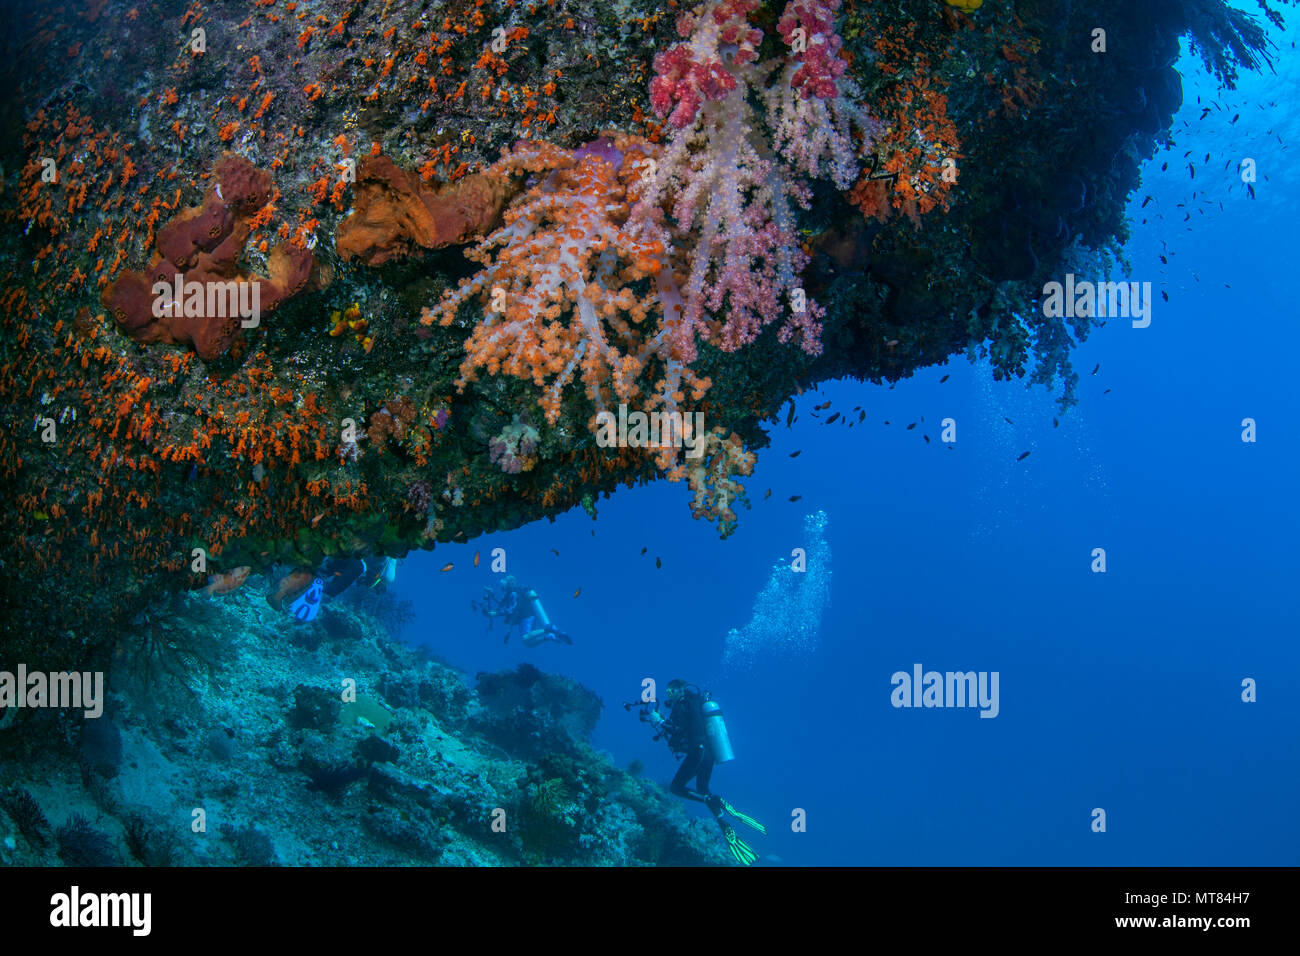 Scuba divers explore reef wall with soft corals under ledge in foreground. Raja Ampat, Indonesia. - Stock Image